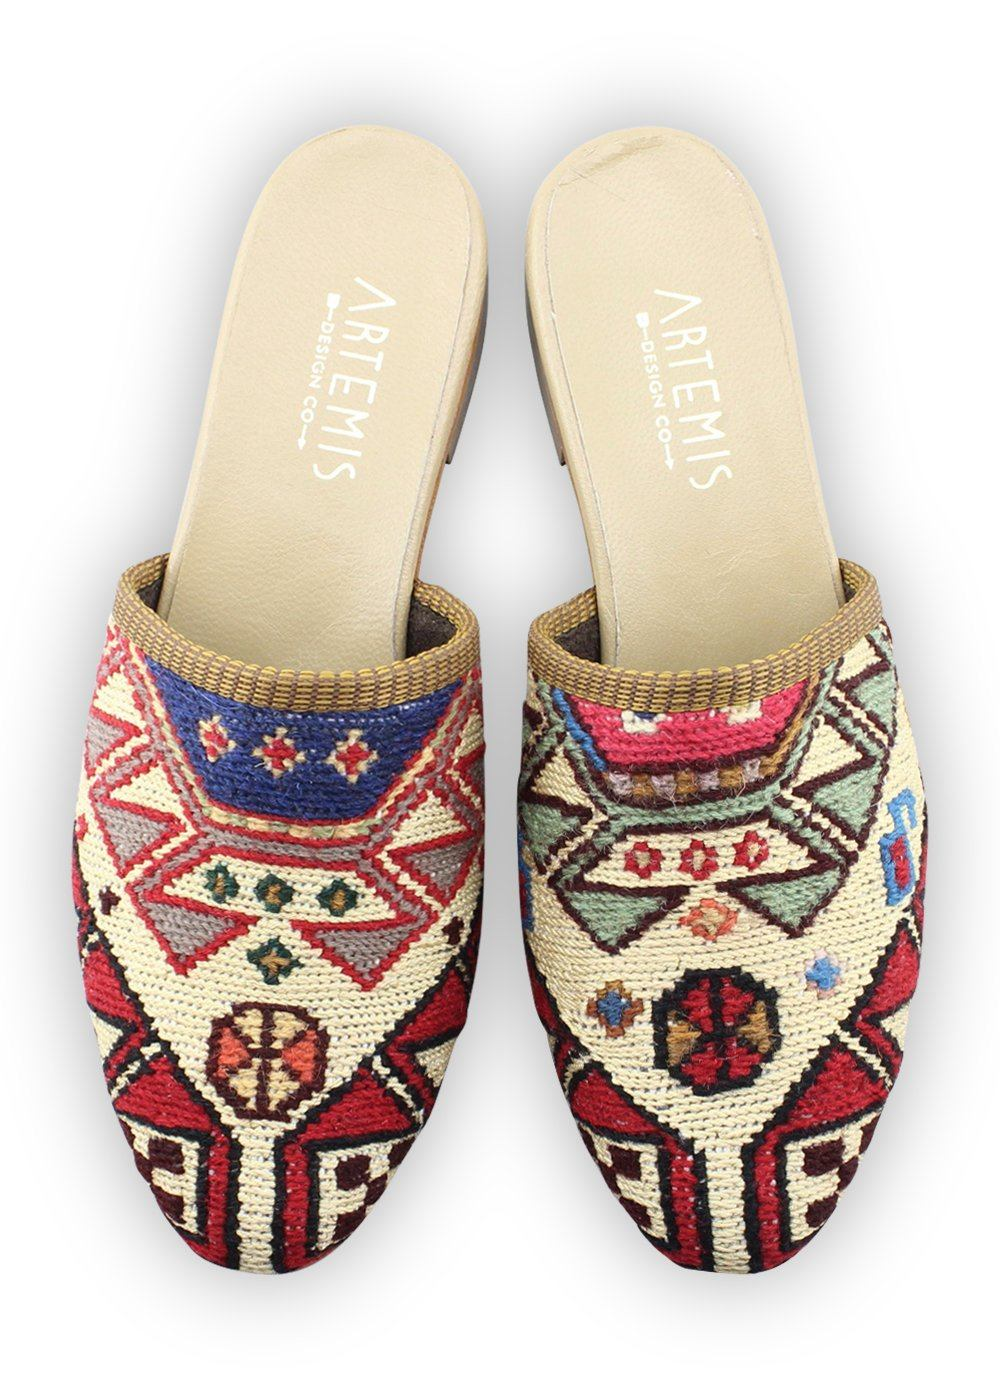 Women's Shoes - Women's Sumak Kilim Slides - Size 41